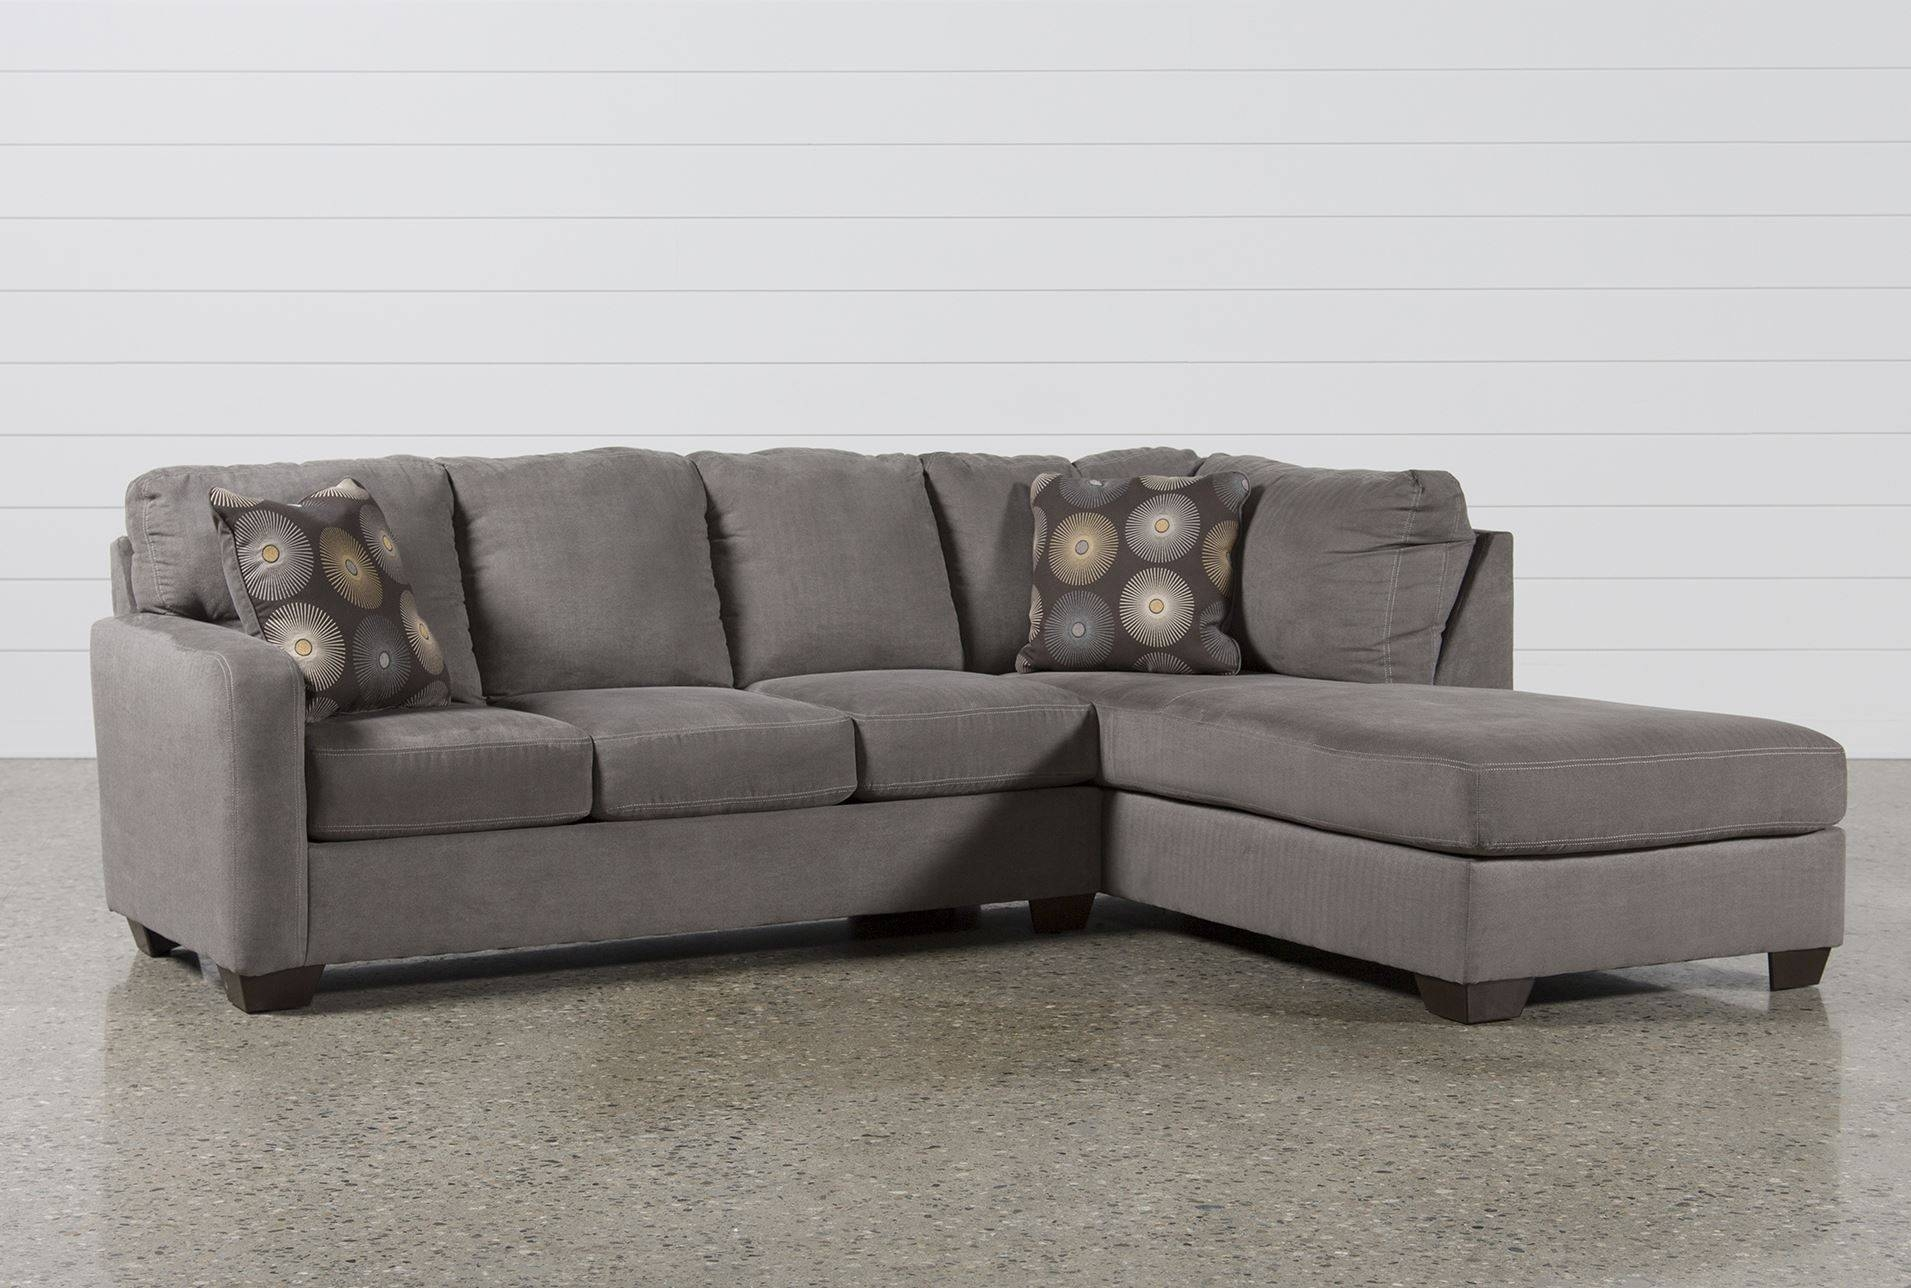 Best 2 Piece Sectional Sofa 23 For Your Living Room Sofa Ideas with 2 Piece Sofas (Image 6 of 15)